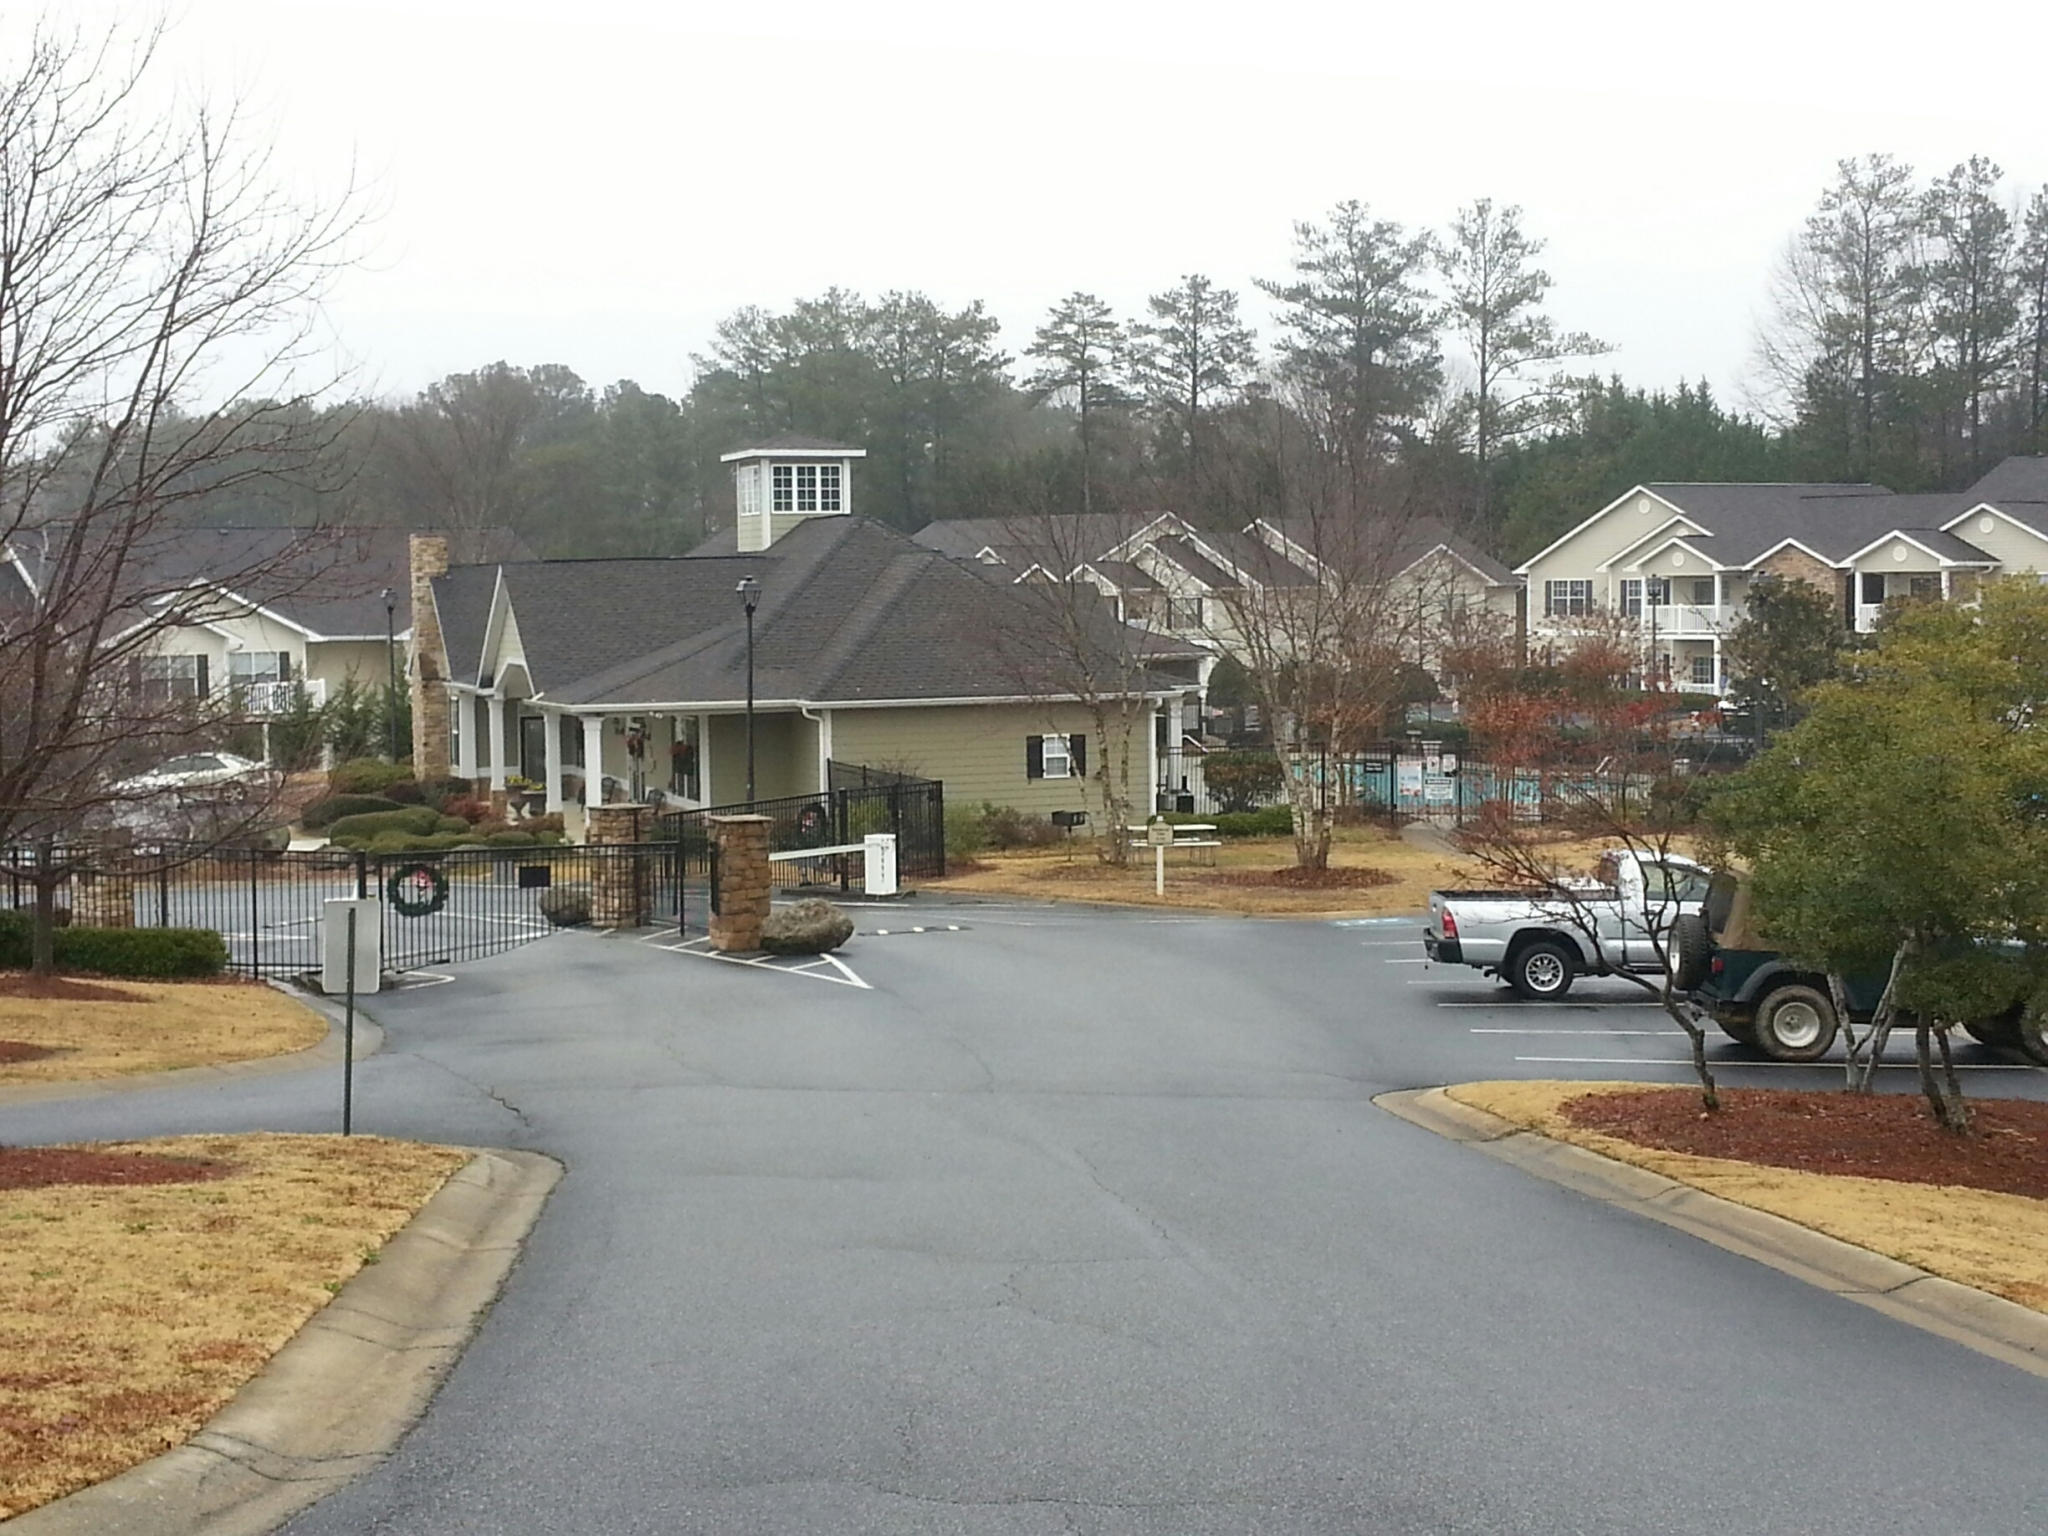 Stone Mill Apartments 1 2 3 Bed 1 2 Bath Apartment For Rent In Cartersville Ga Ad 143370